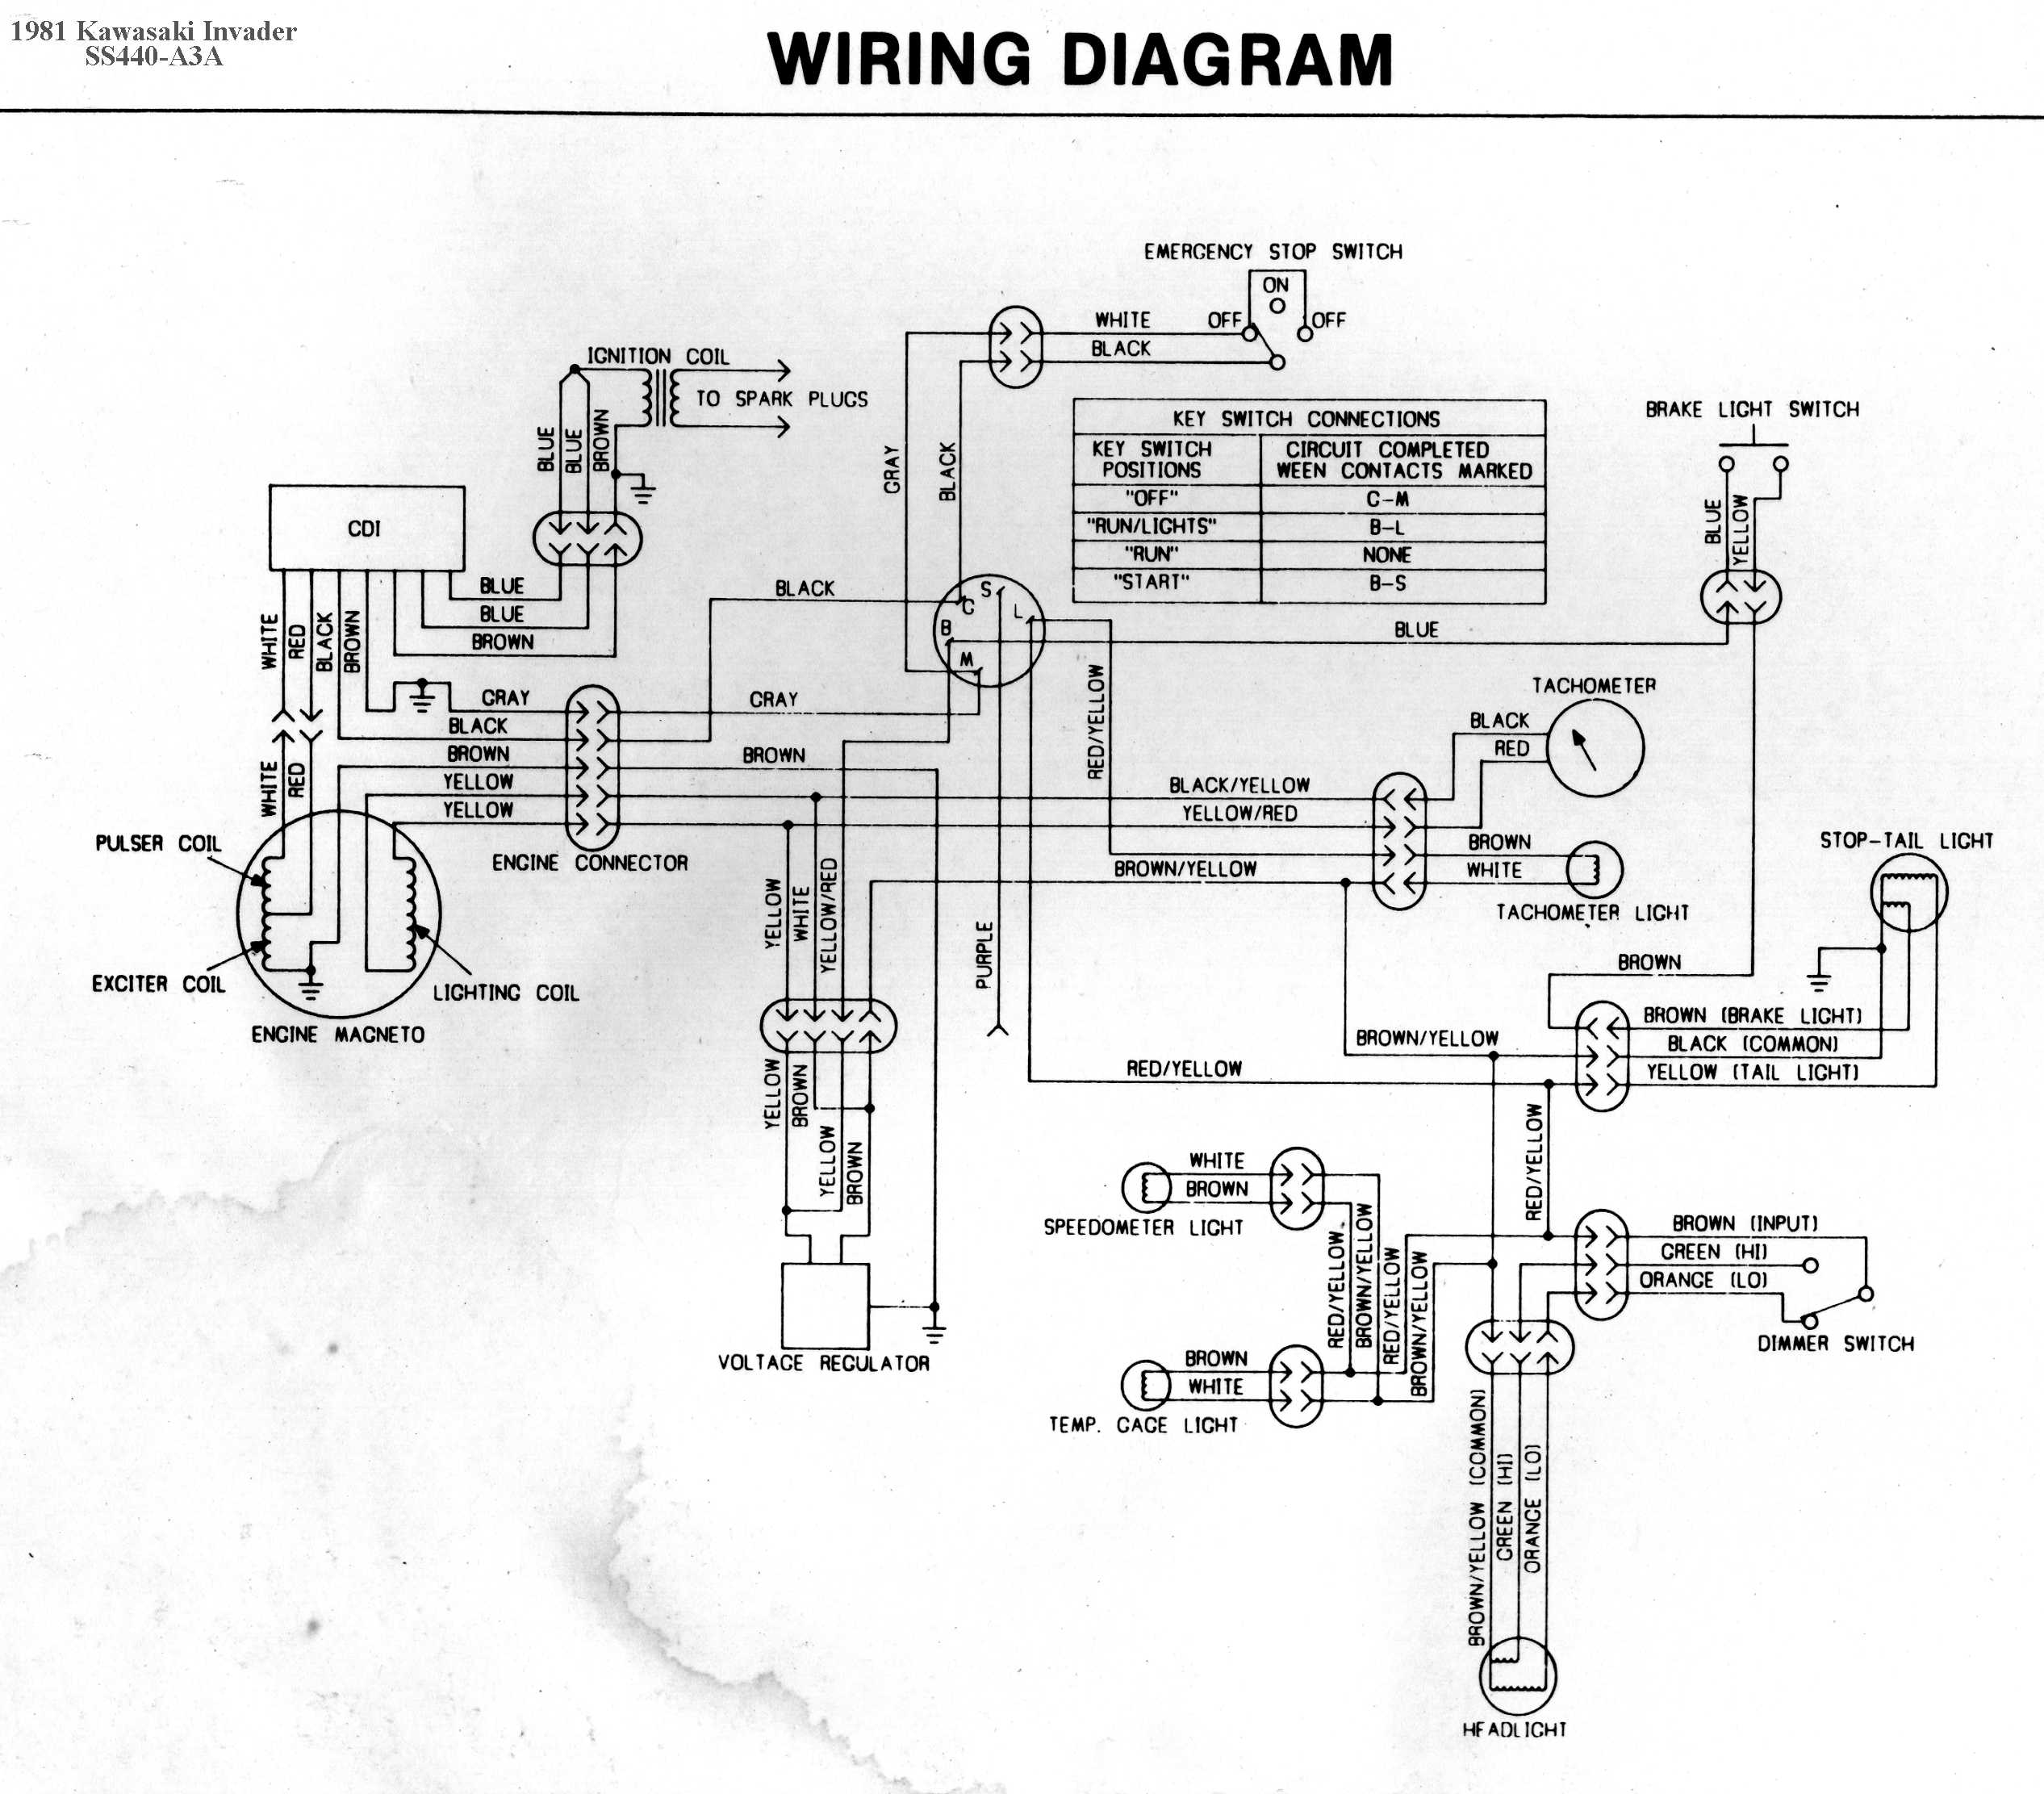 1980 Kawasaki Kz440 Coil Wiring Diagram 39 Images Zrx Free Picture Schematic Invader Snowmobile Diagrams